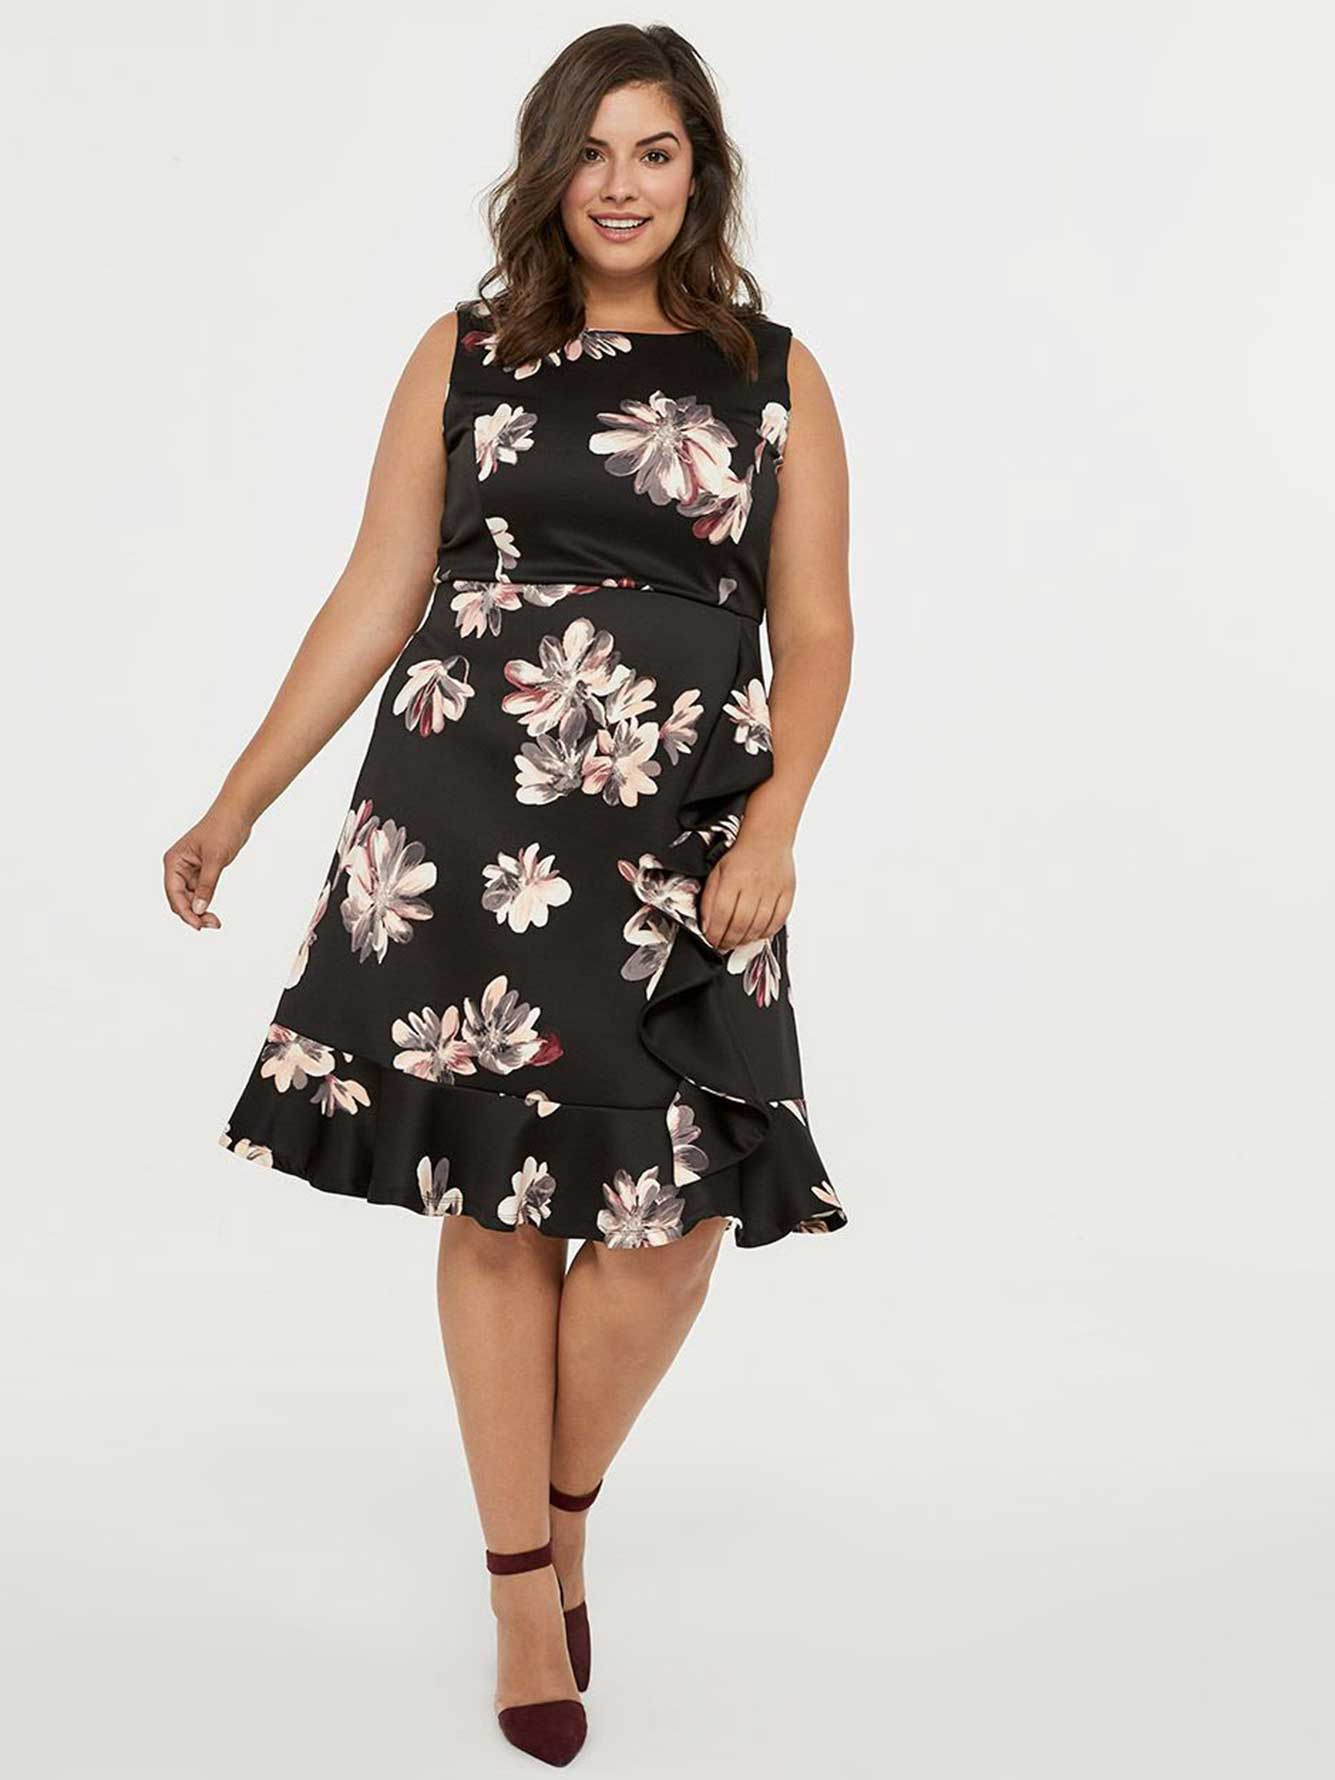 43a76db7679 Printed Fit and Flare Dress with Ruffle Detail - In Every Story ...